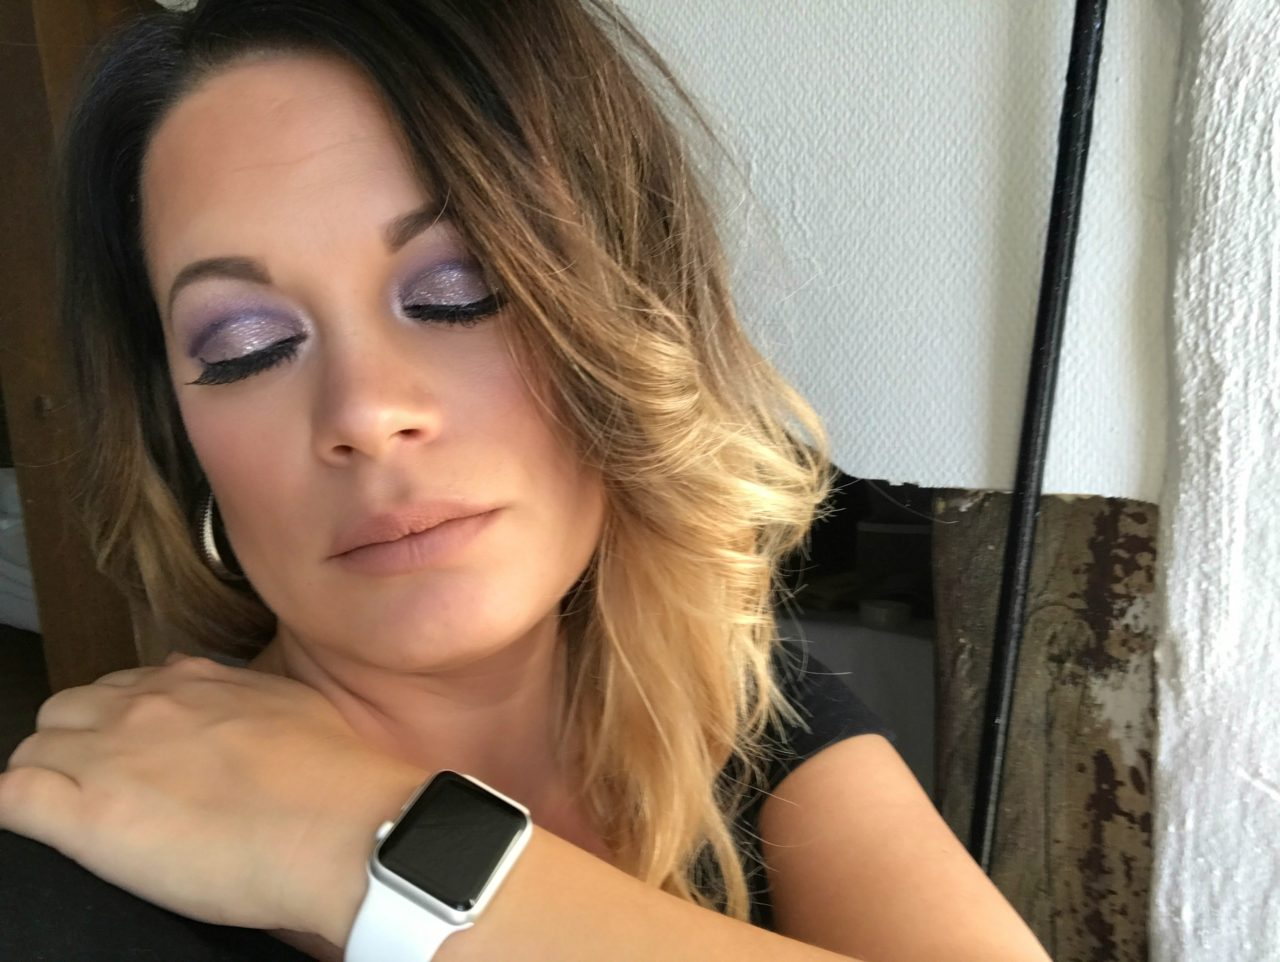 Tired Woman With Cut Crease Makeup Closes Her Eyes